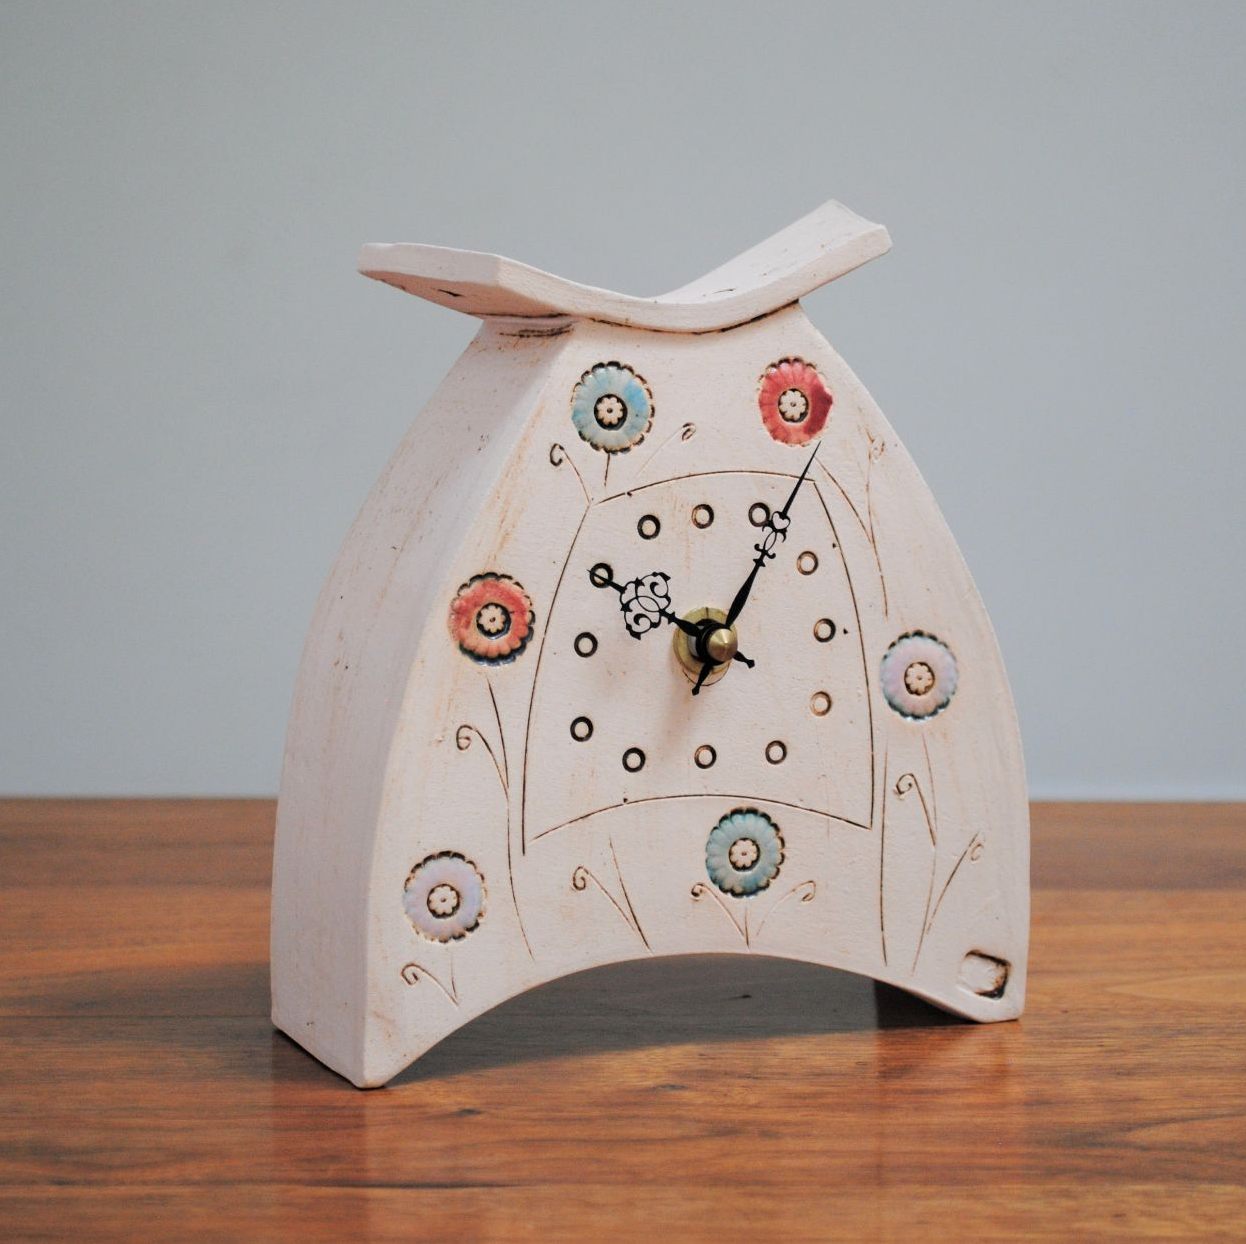 Ceramic small mantel clock with german quartz movement from a white clay and colourful design.